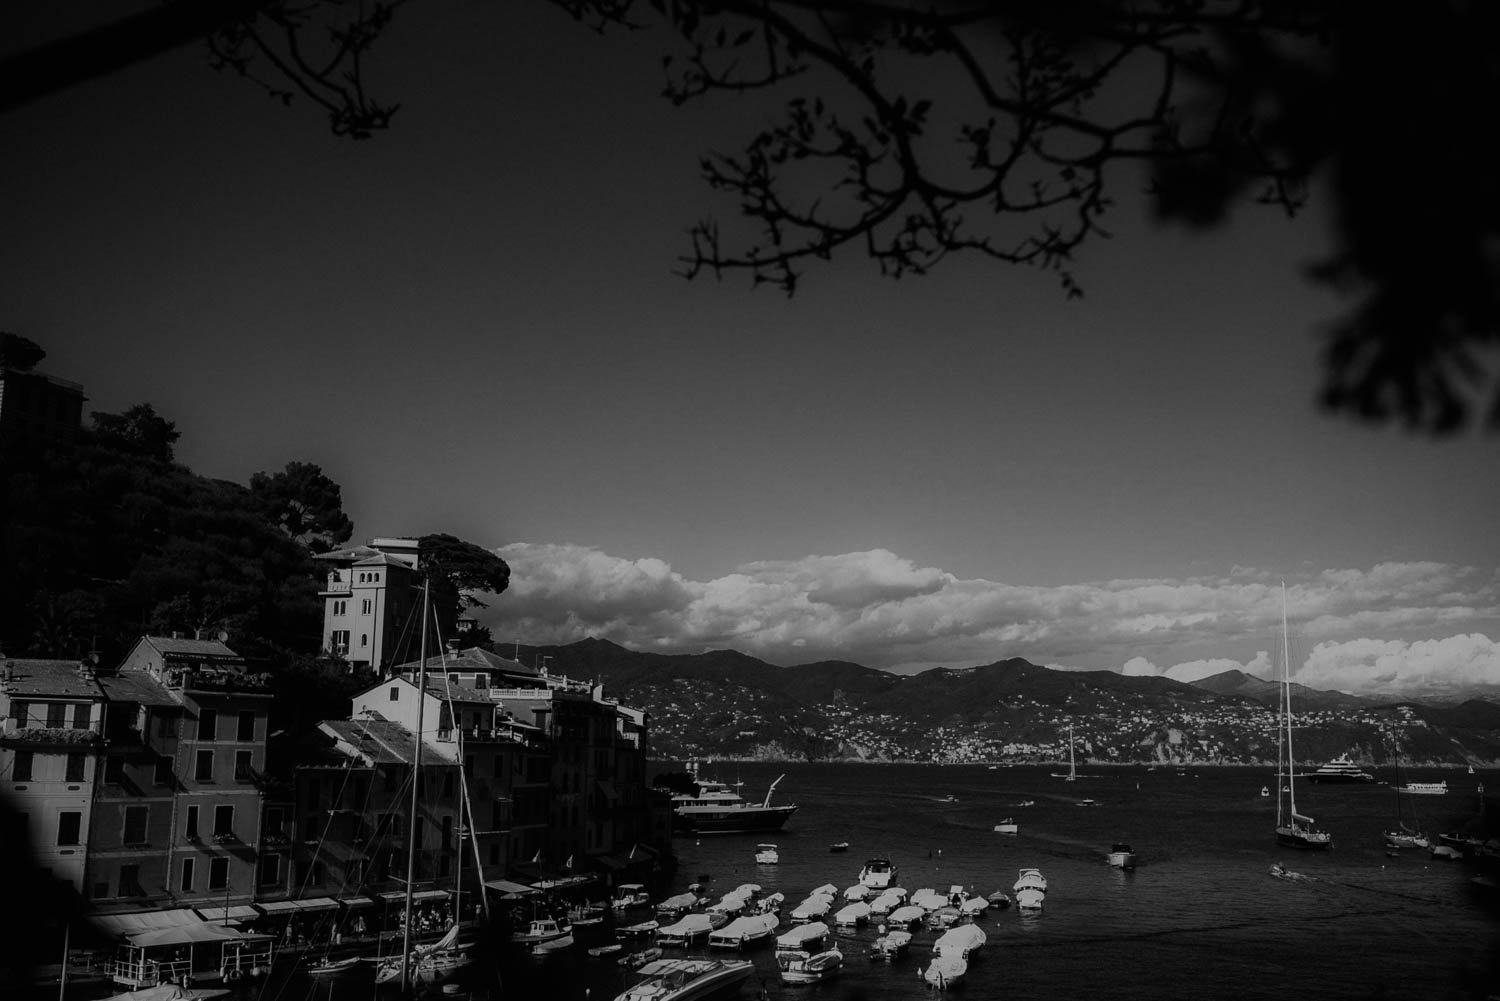 portofino-wedding-photography-rafal-bojar-68.jpg